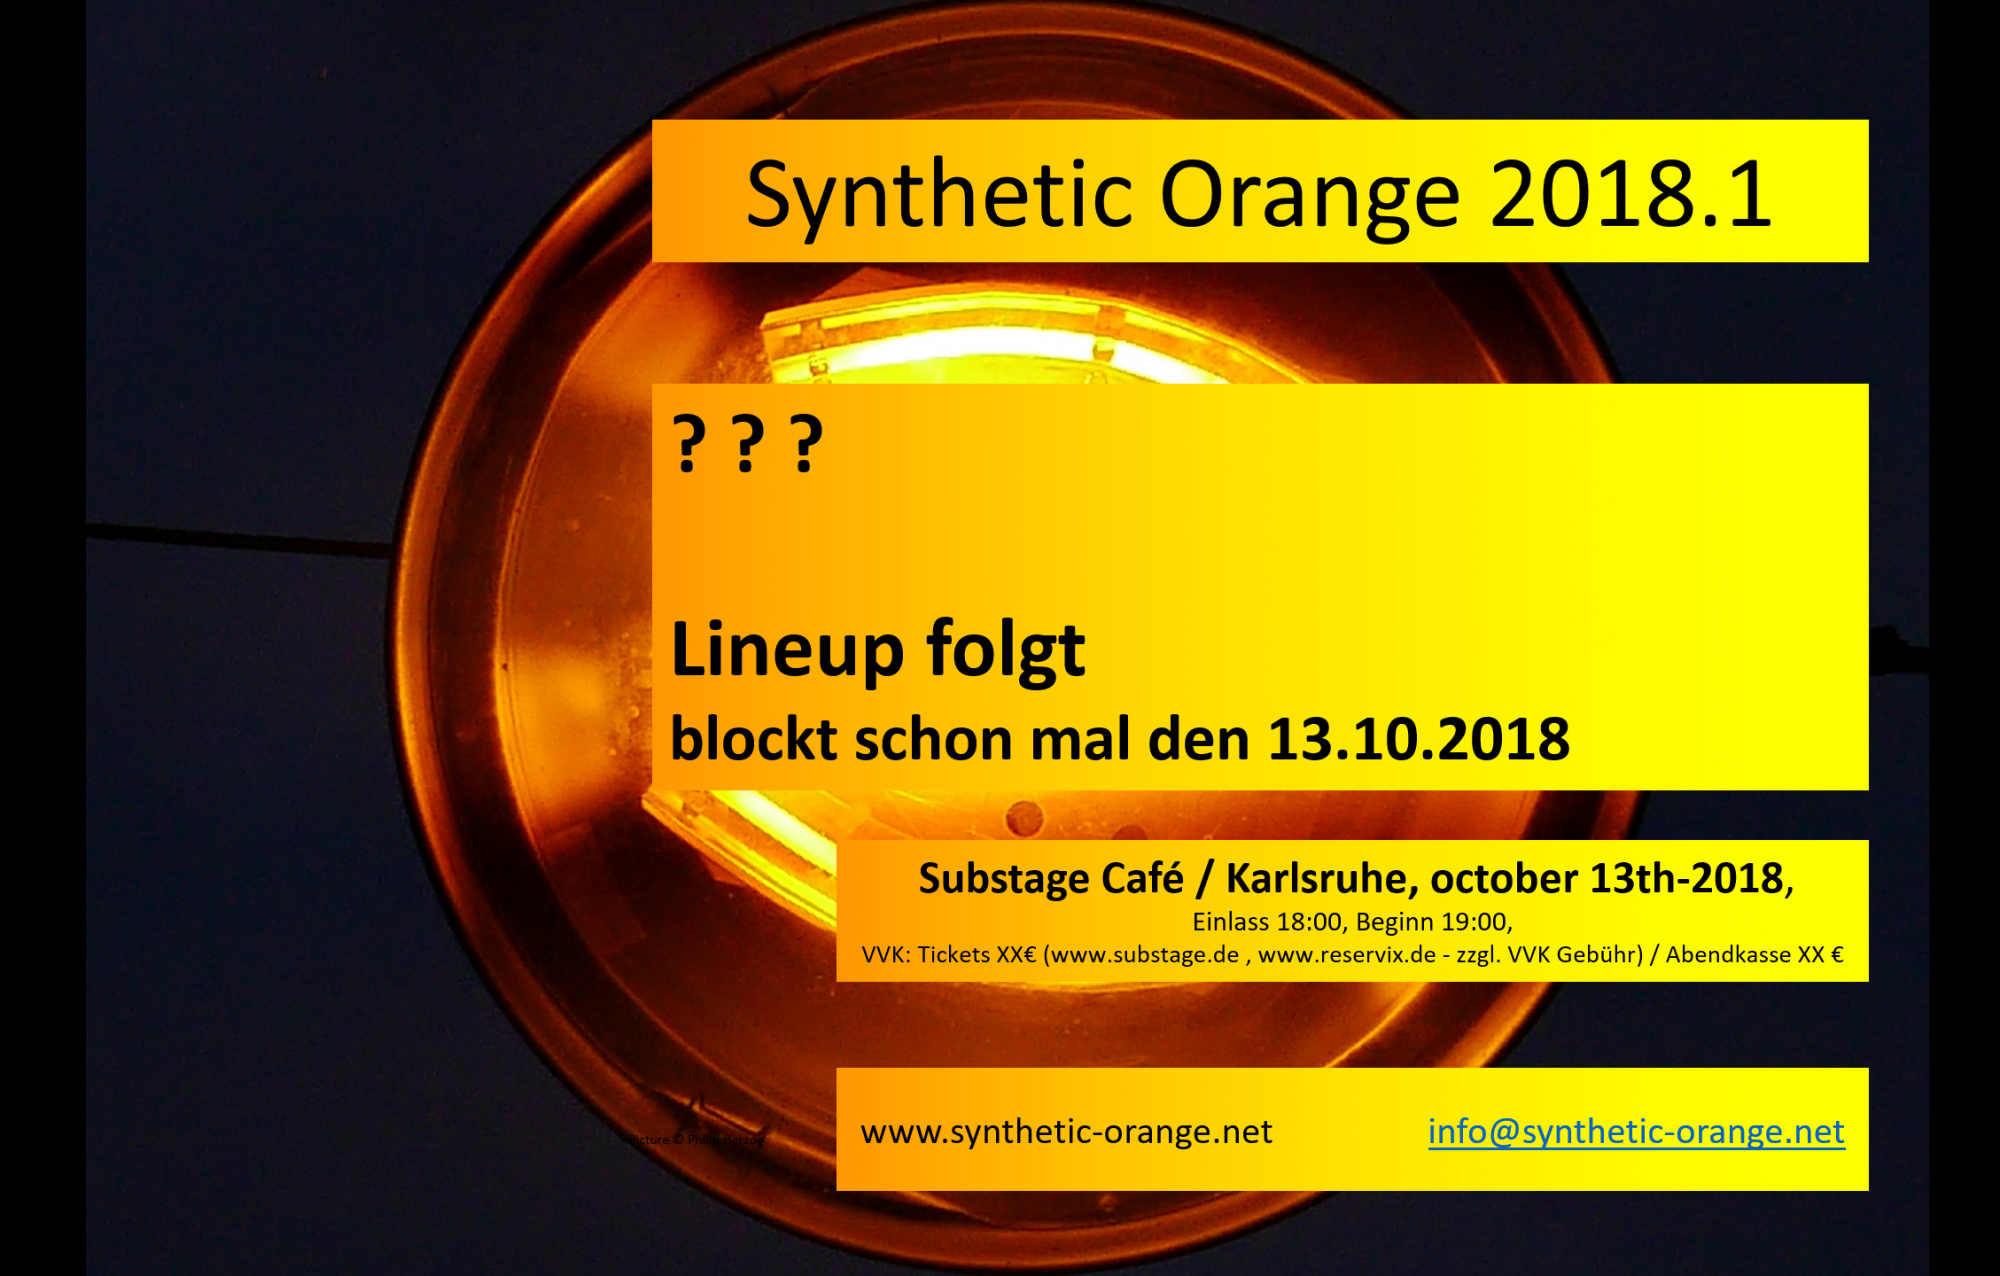 SYNTHETIC ORANGE 2018